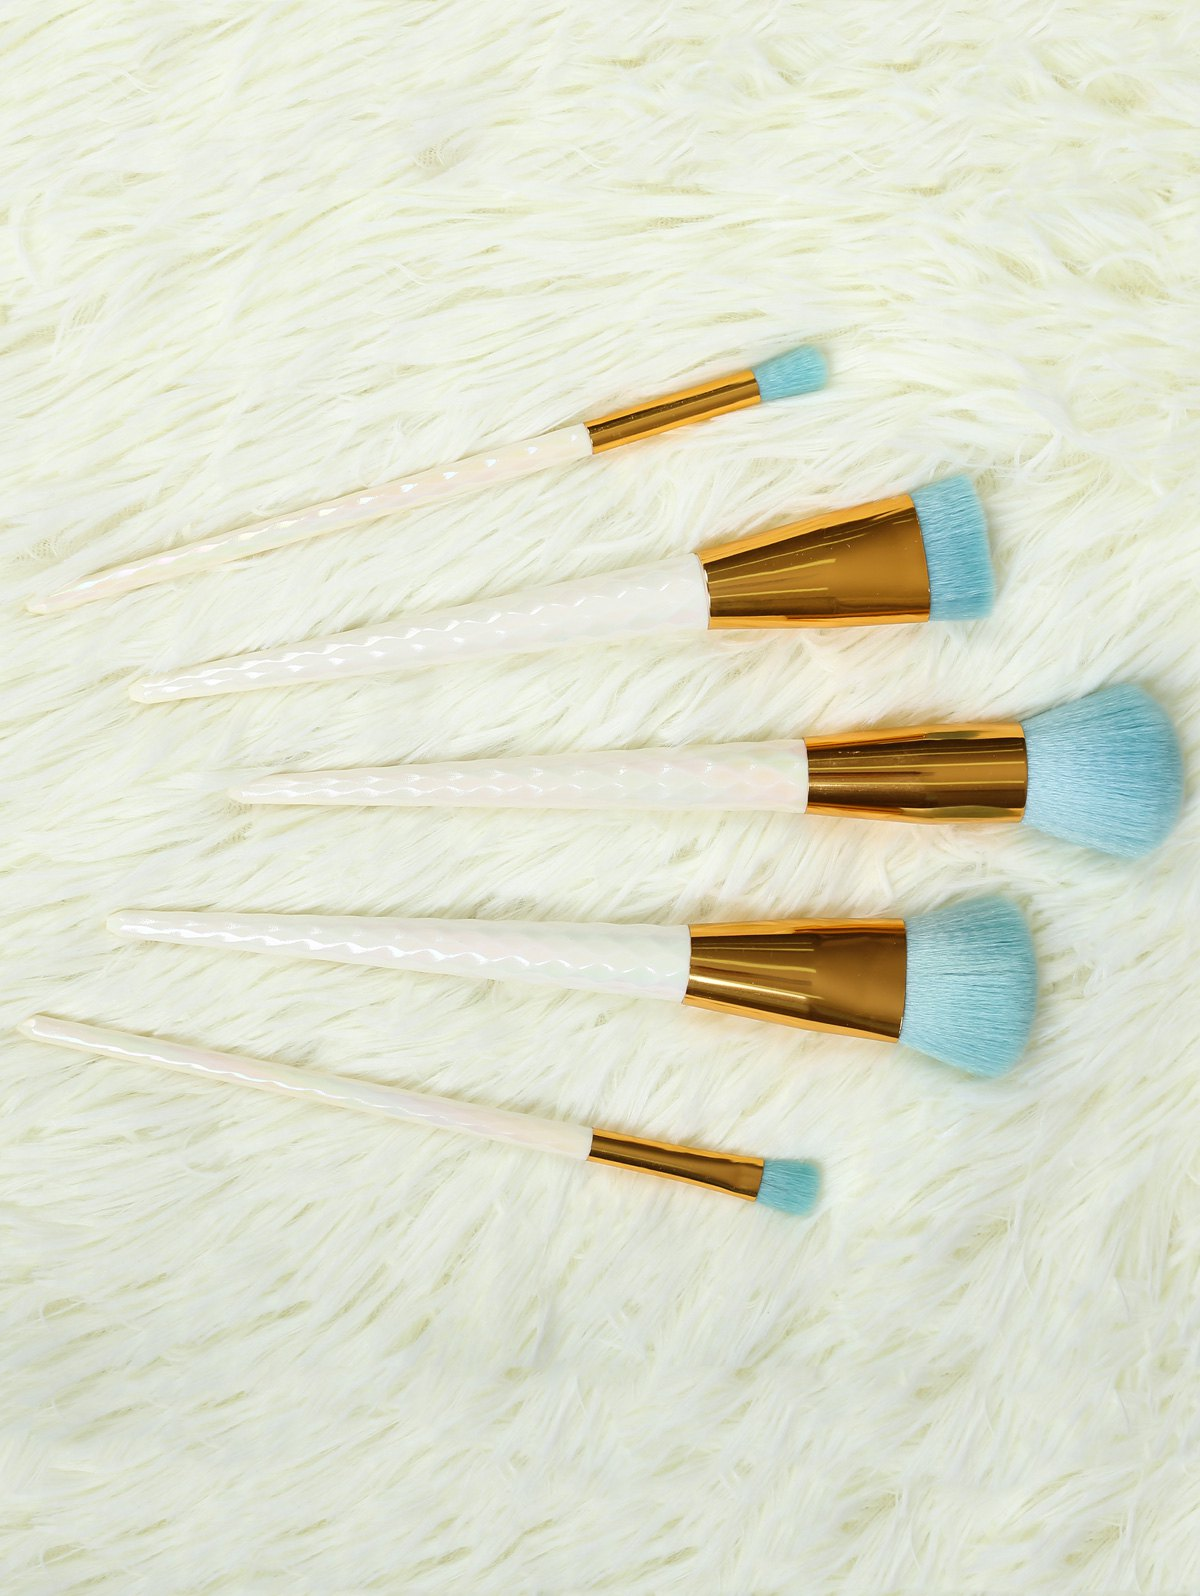 5 Pcs Nylon Makeup Brushes Set